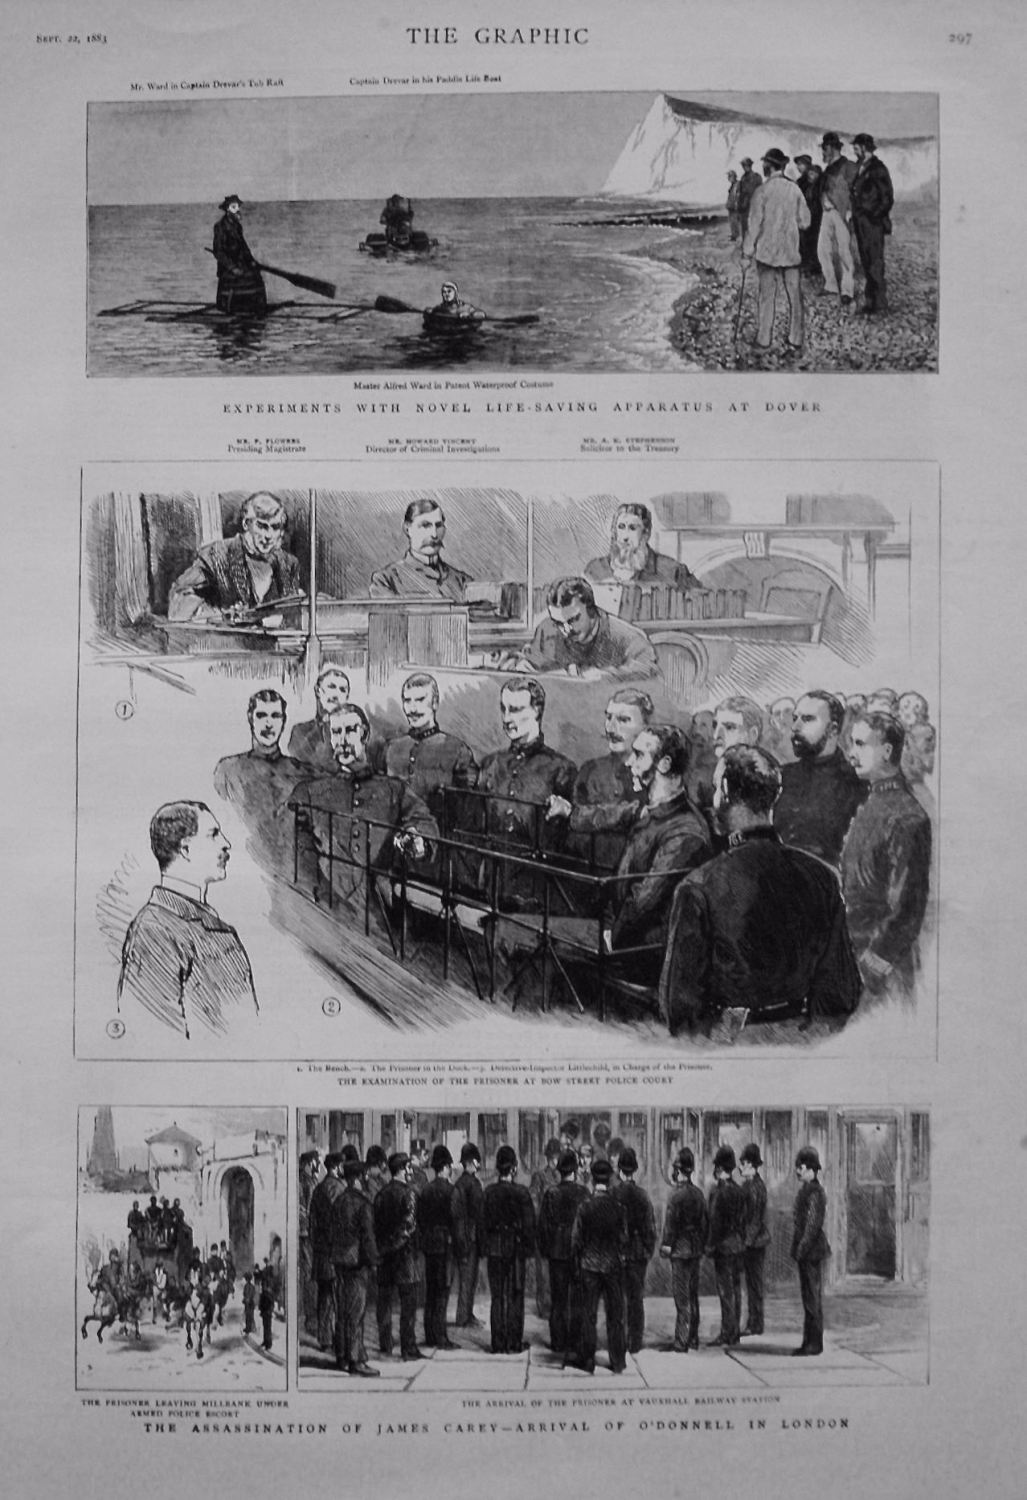 Assassination of James Carey - Arrival of O'Donnell in London. 1883